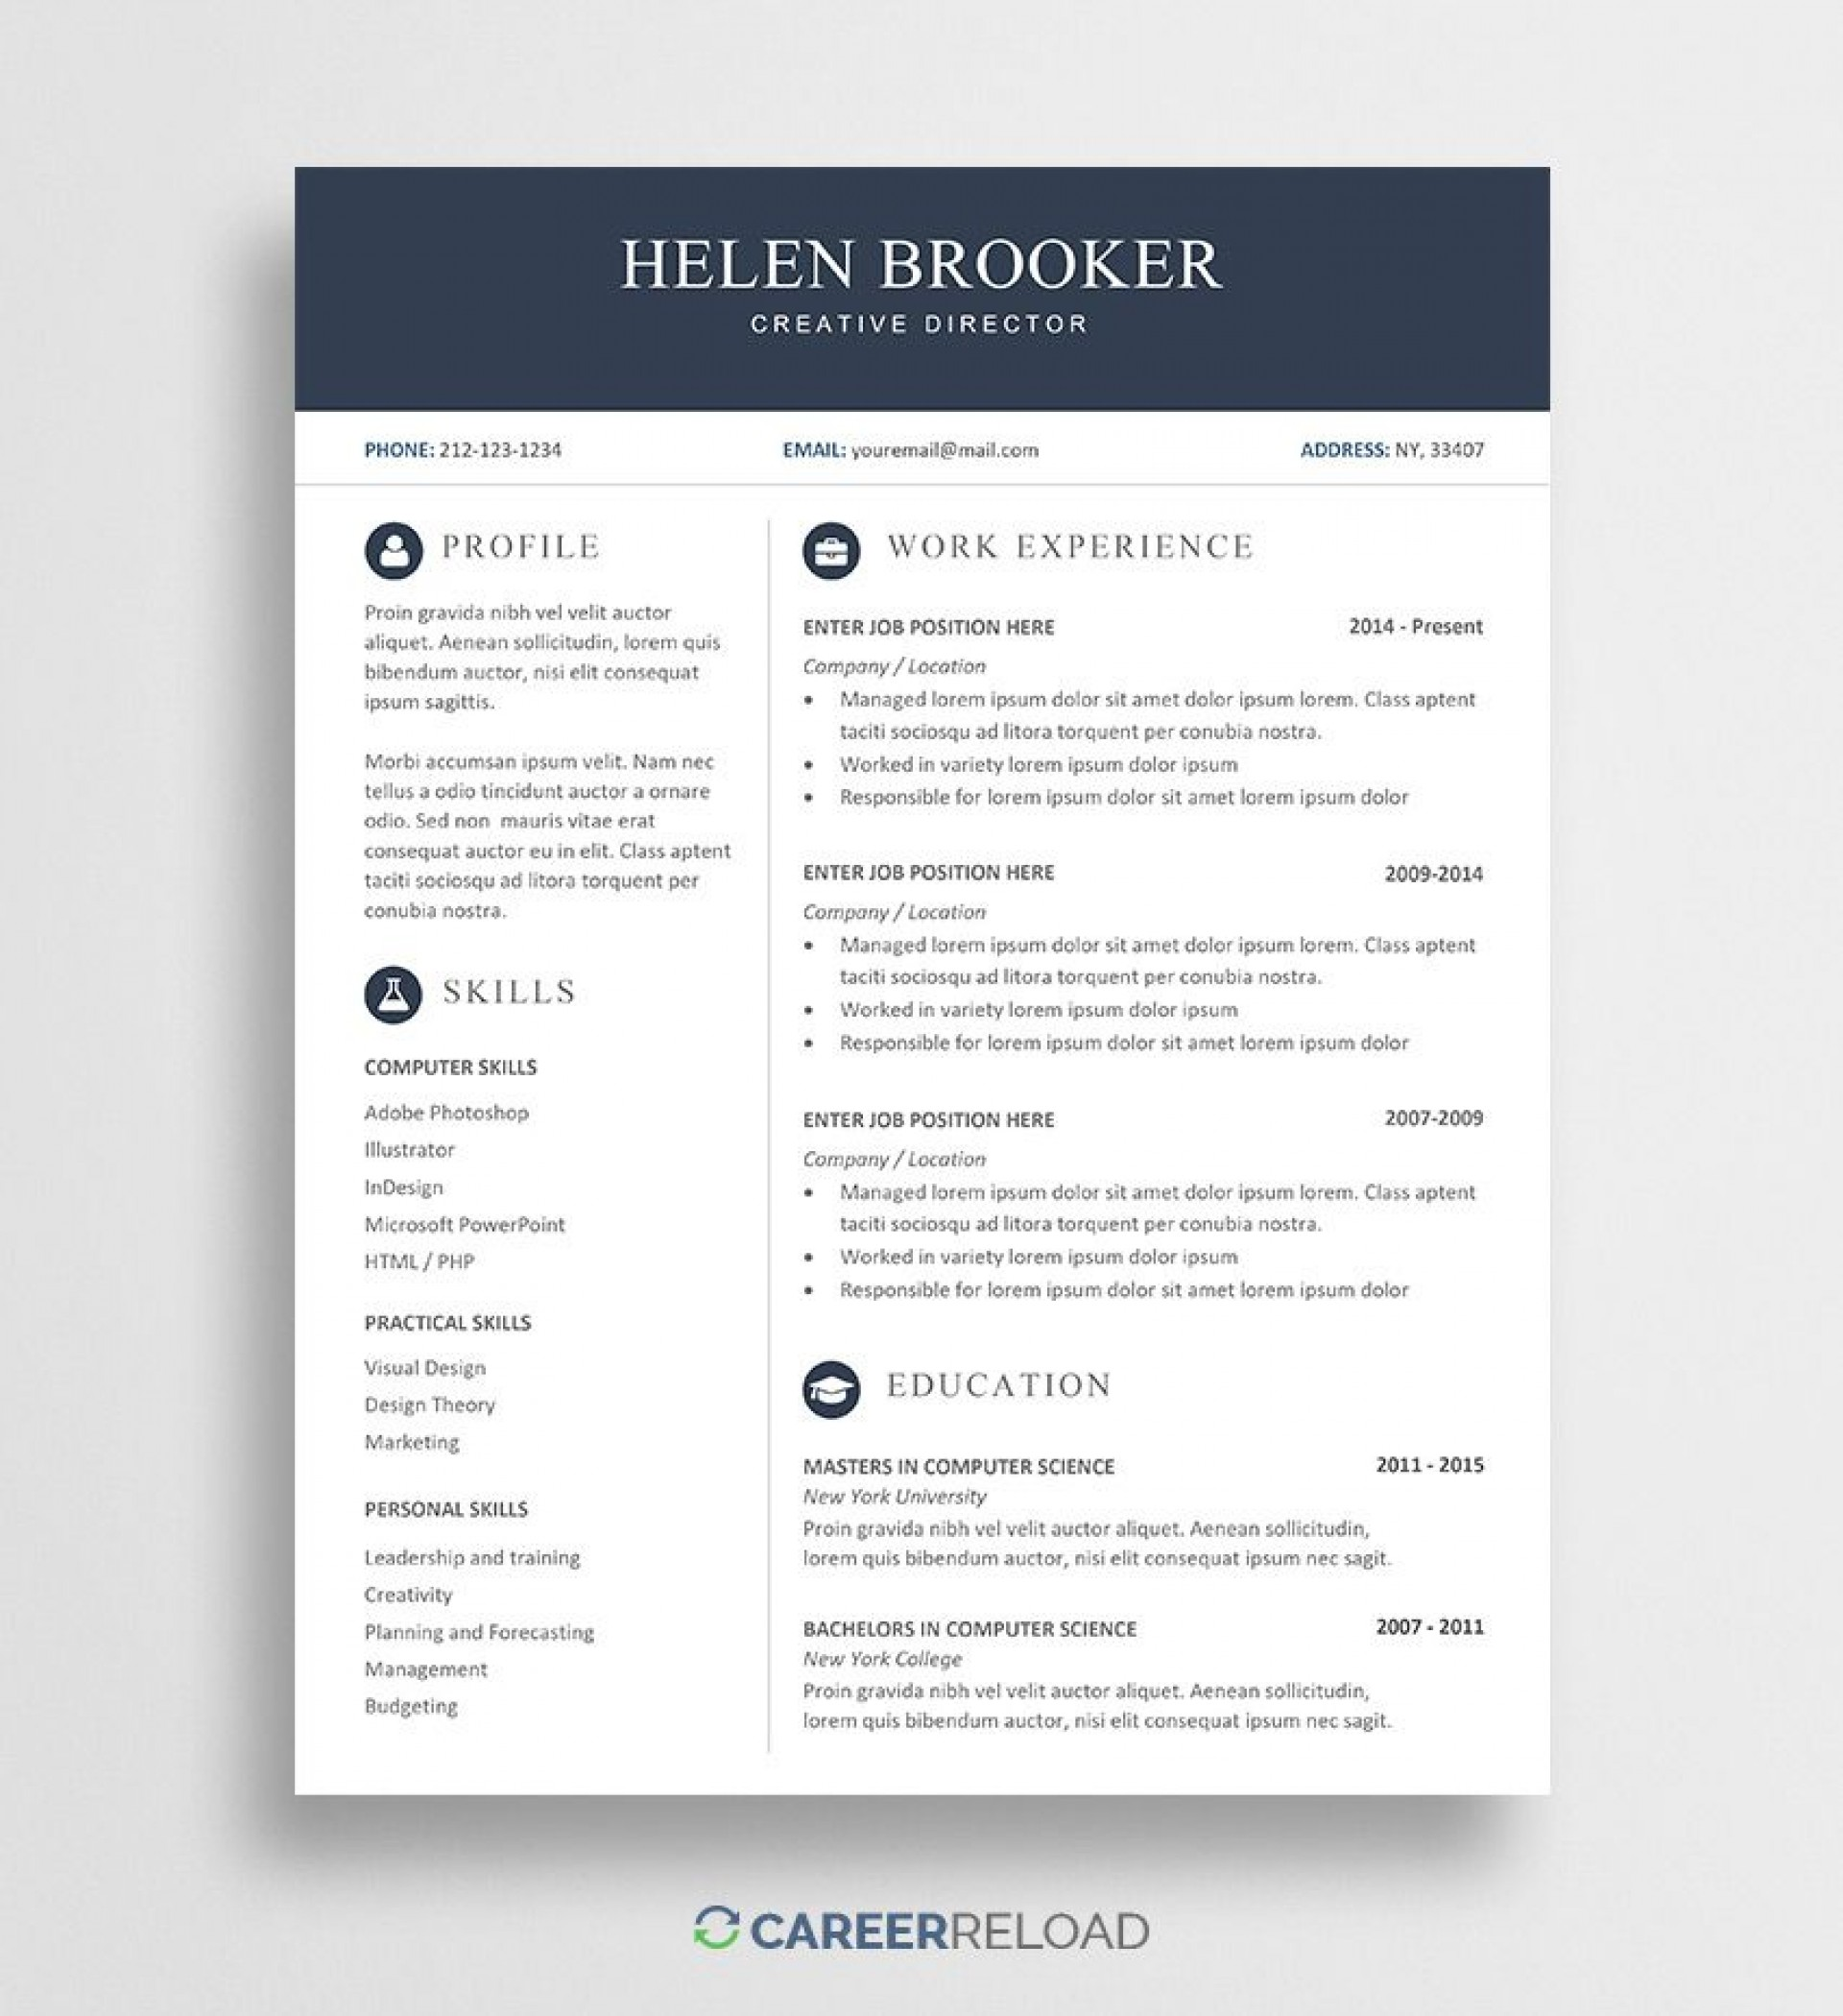 005 Rare Resume Template M Word Free High Resolution  Modern Microsoft Download 2010 Cv With Picture1920